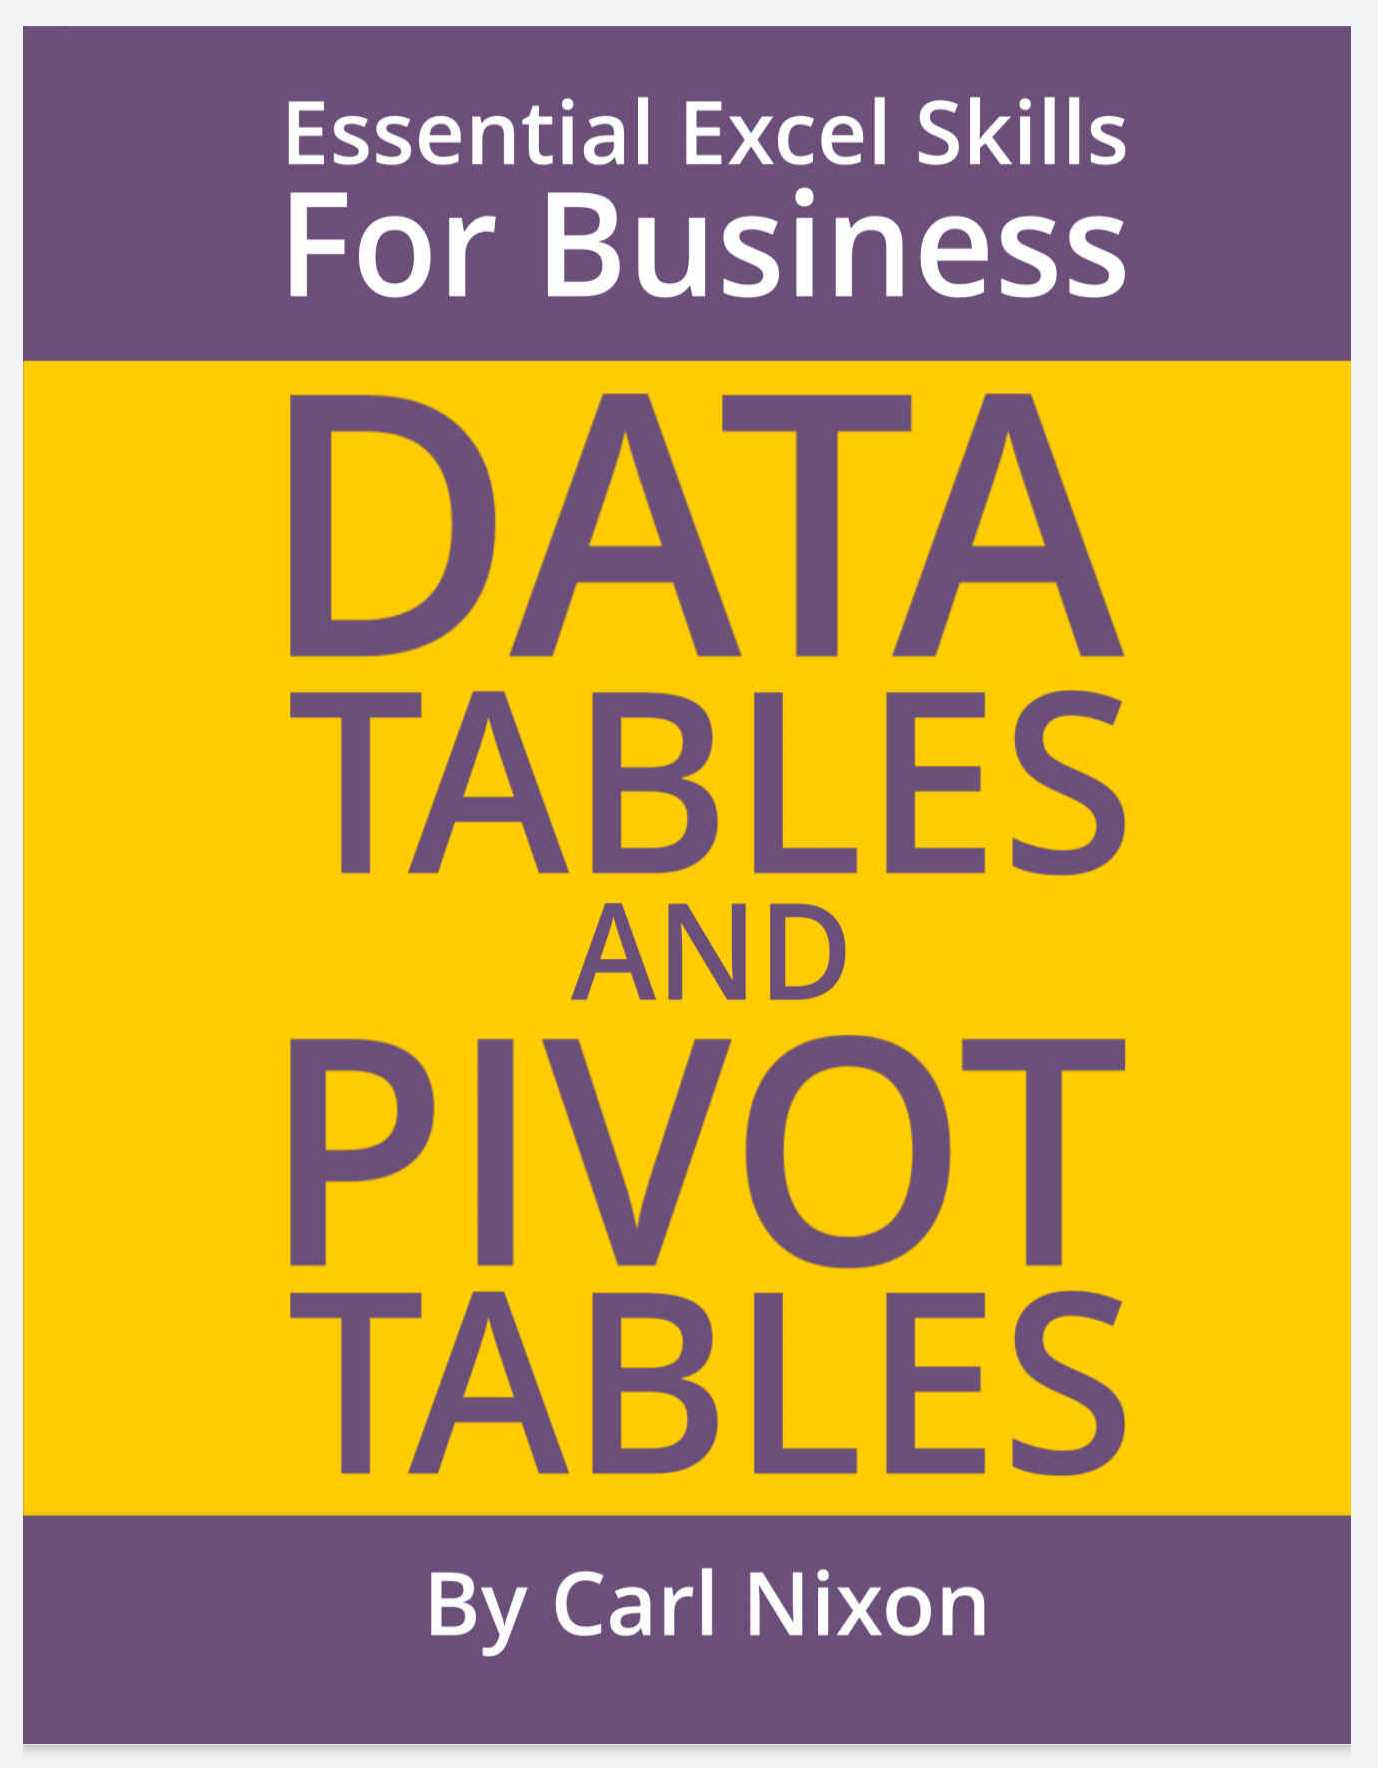 Data Tables And Pivot Tables Essential Excel Skills For Business